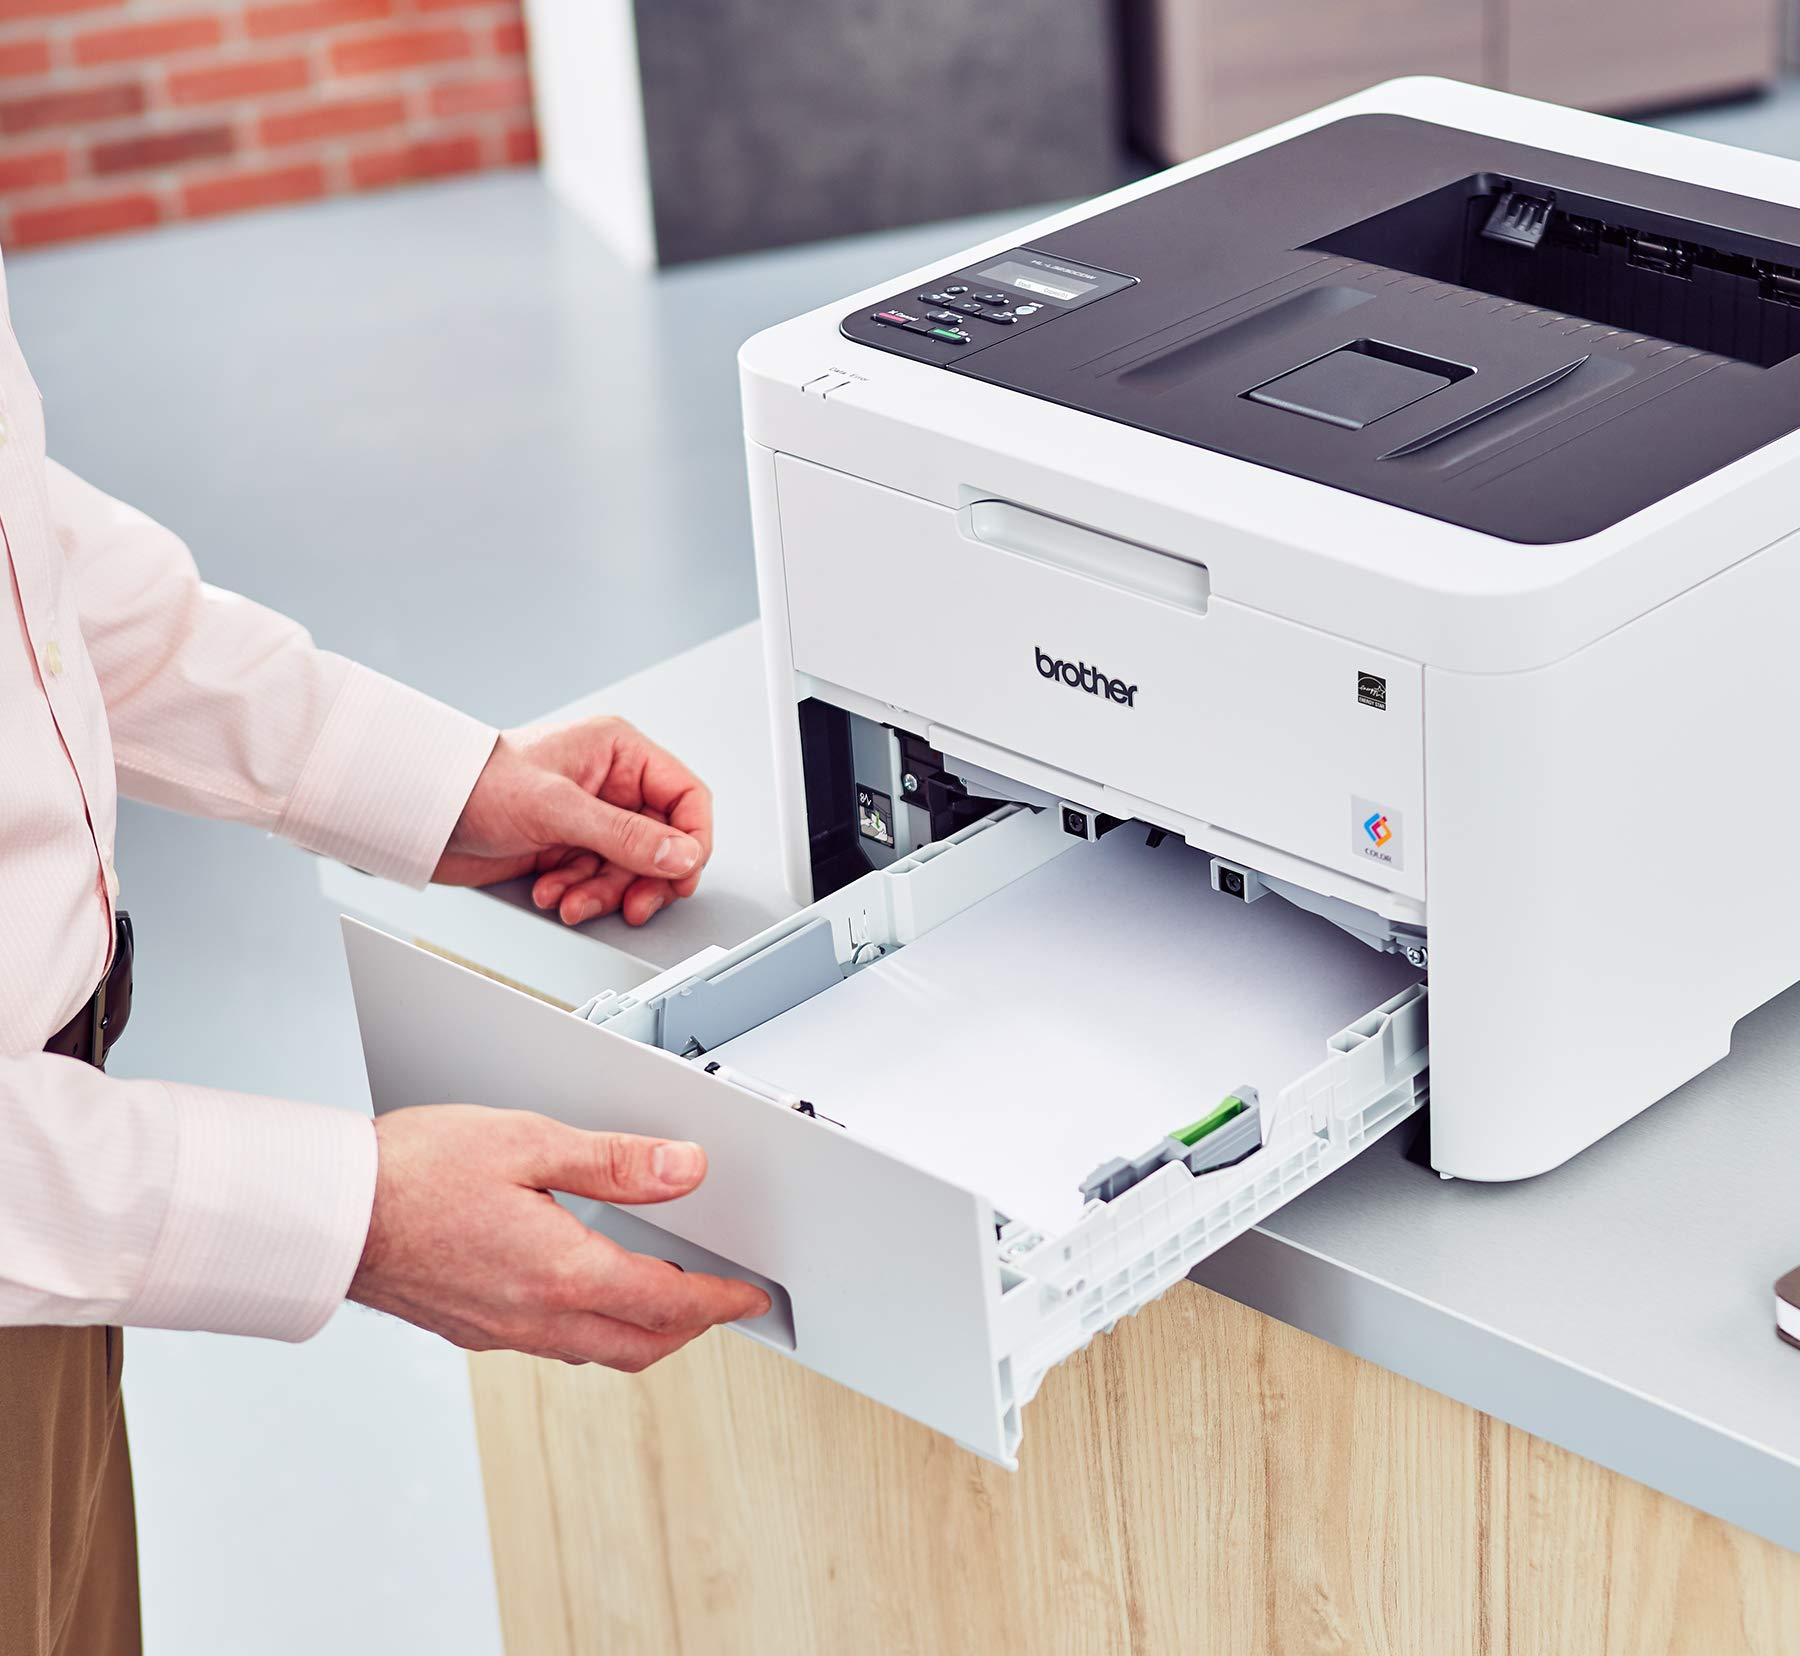 Brother HL-L3230CDW Compact Digital Color Printer Providing Laser Printer Quality Results with Wireless Printing and Duplex Printing, Amazon Dash Replenishment Enabled by Brother (Image #6)